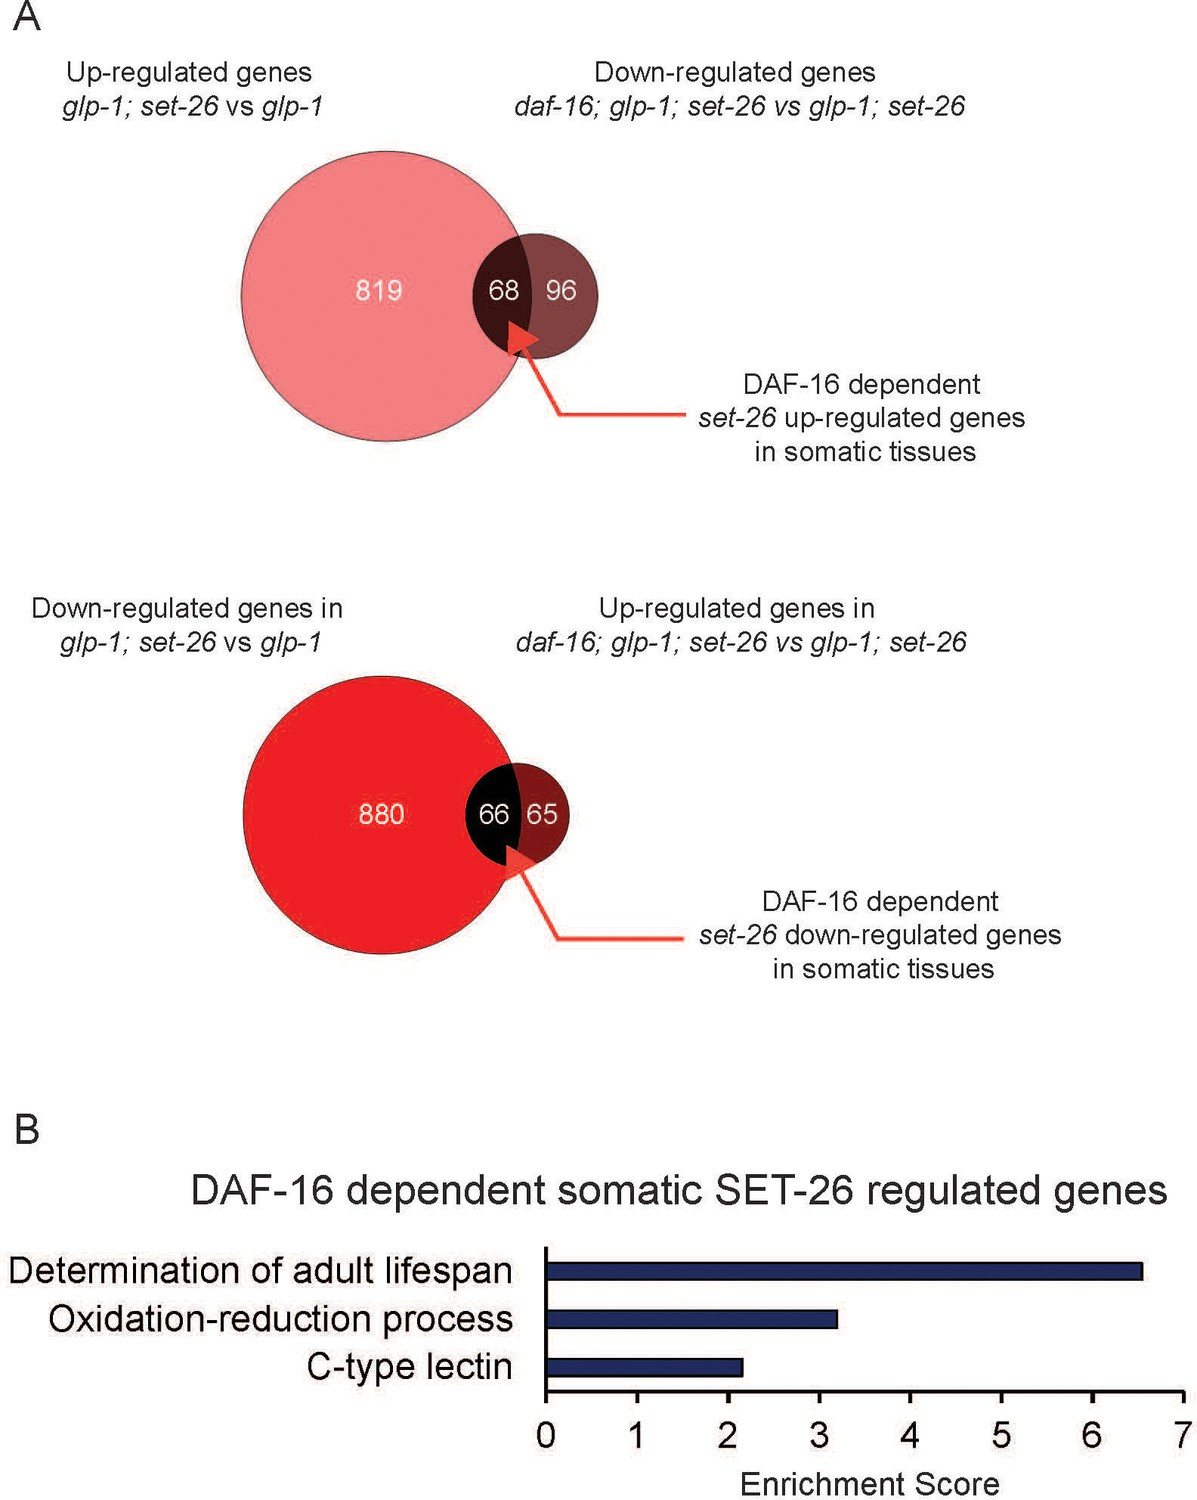 hight resolution of daf 16 dependent somatic set 26 regulated genes are enriched for lifespan determinant genes a venn diagrams